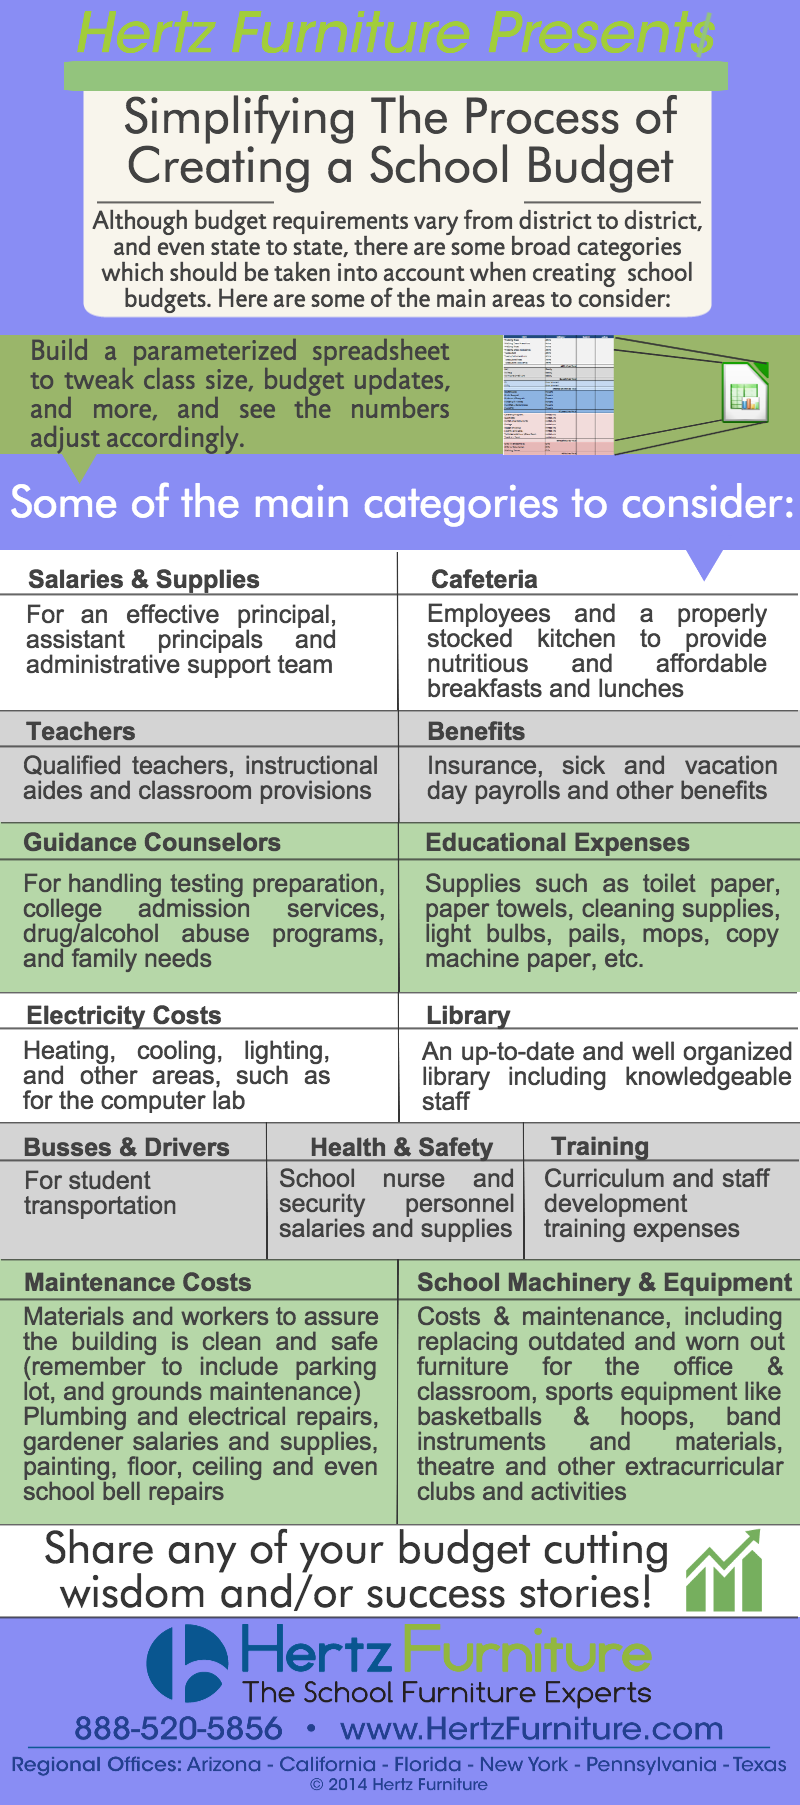 Simplifying the process of creating a school budget infographic